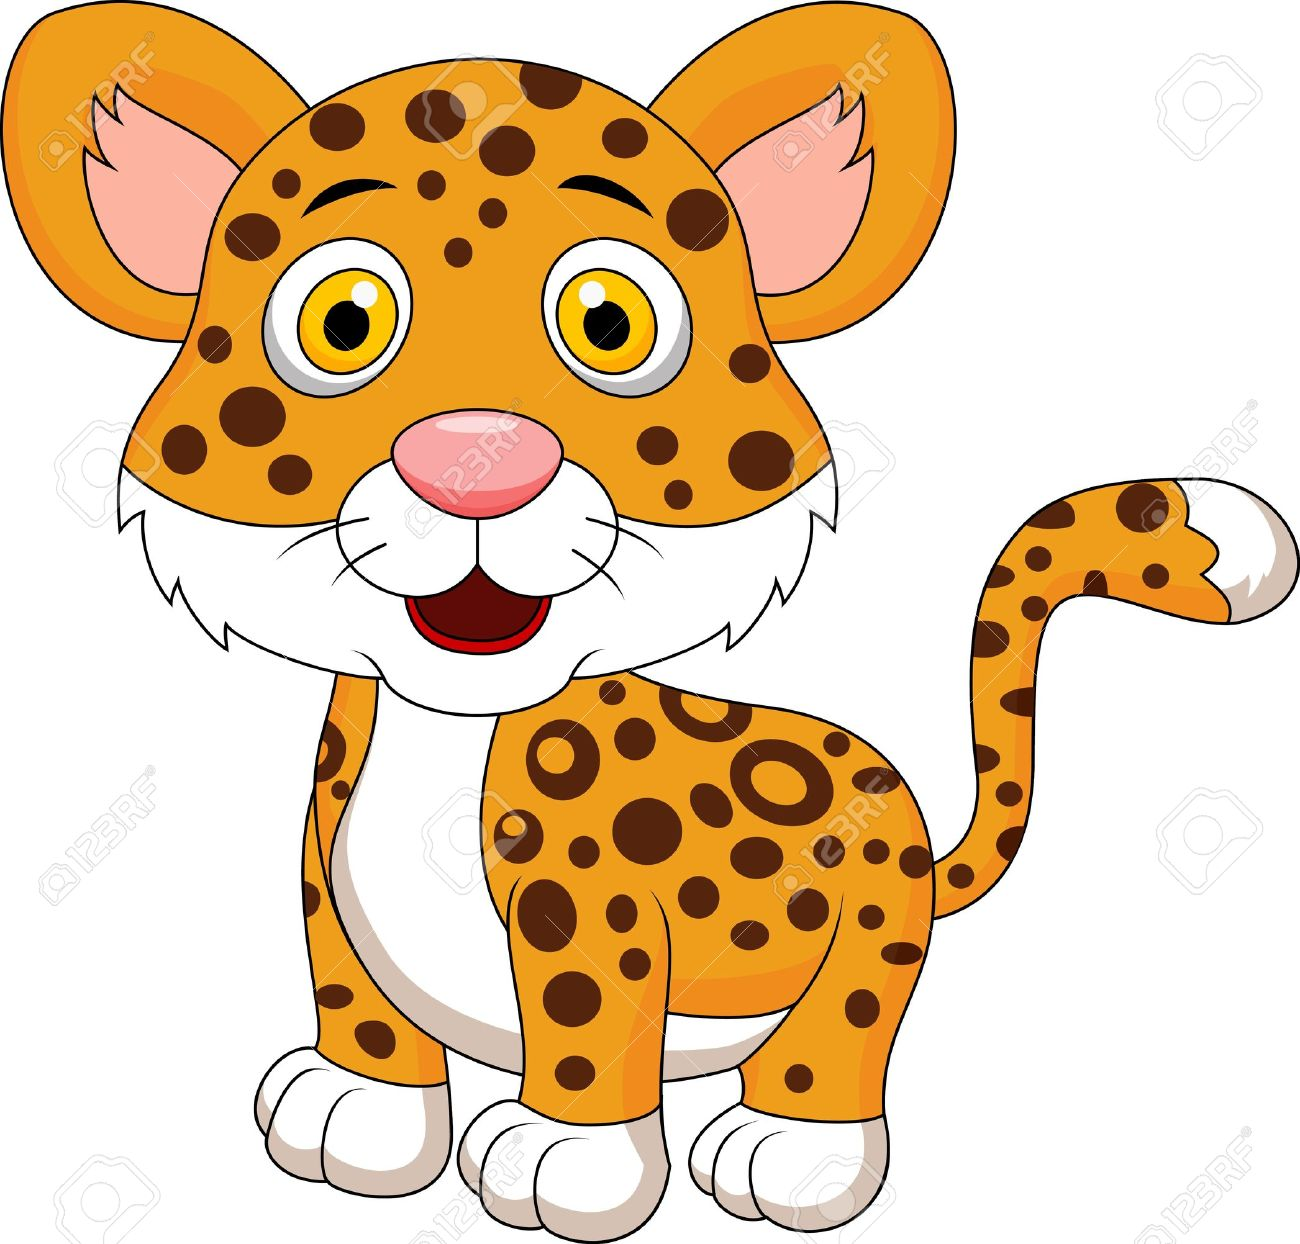 Leopard clipart #3, Download drawings